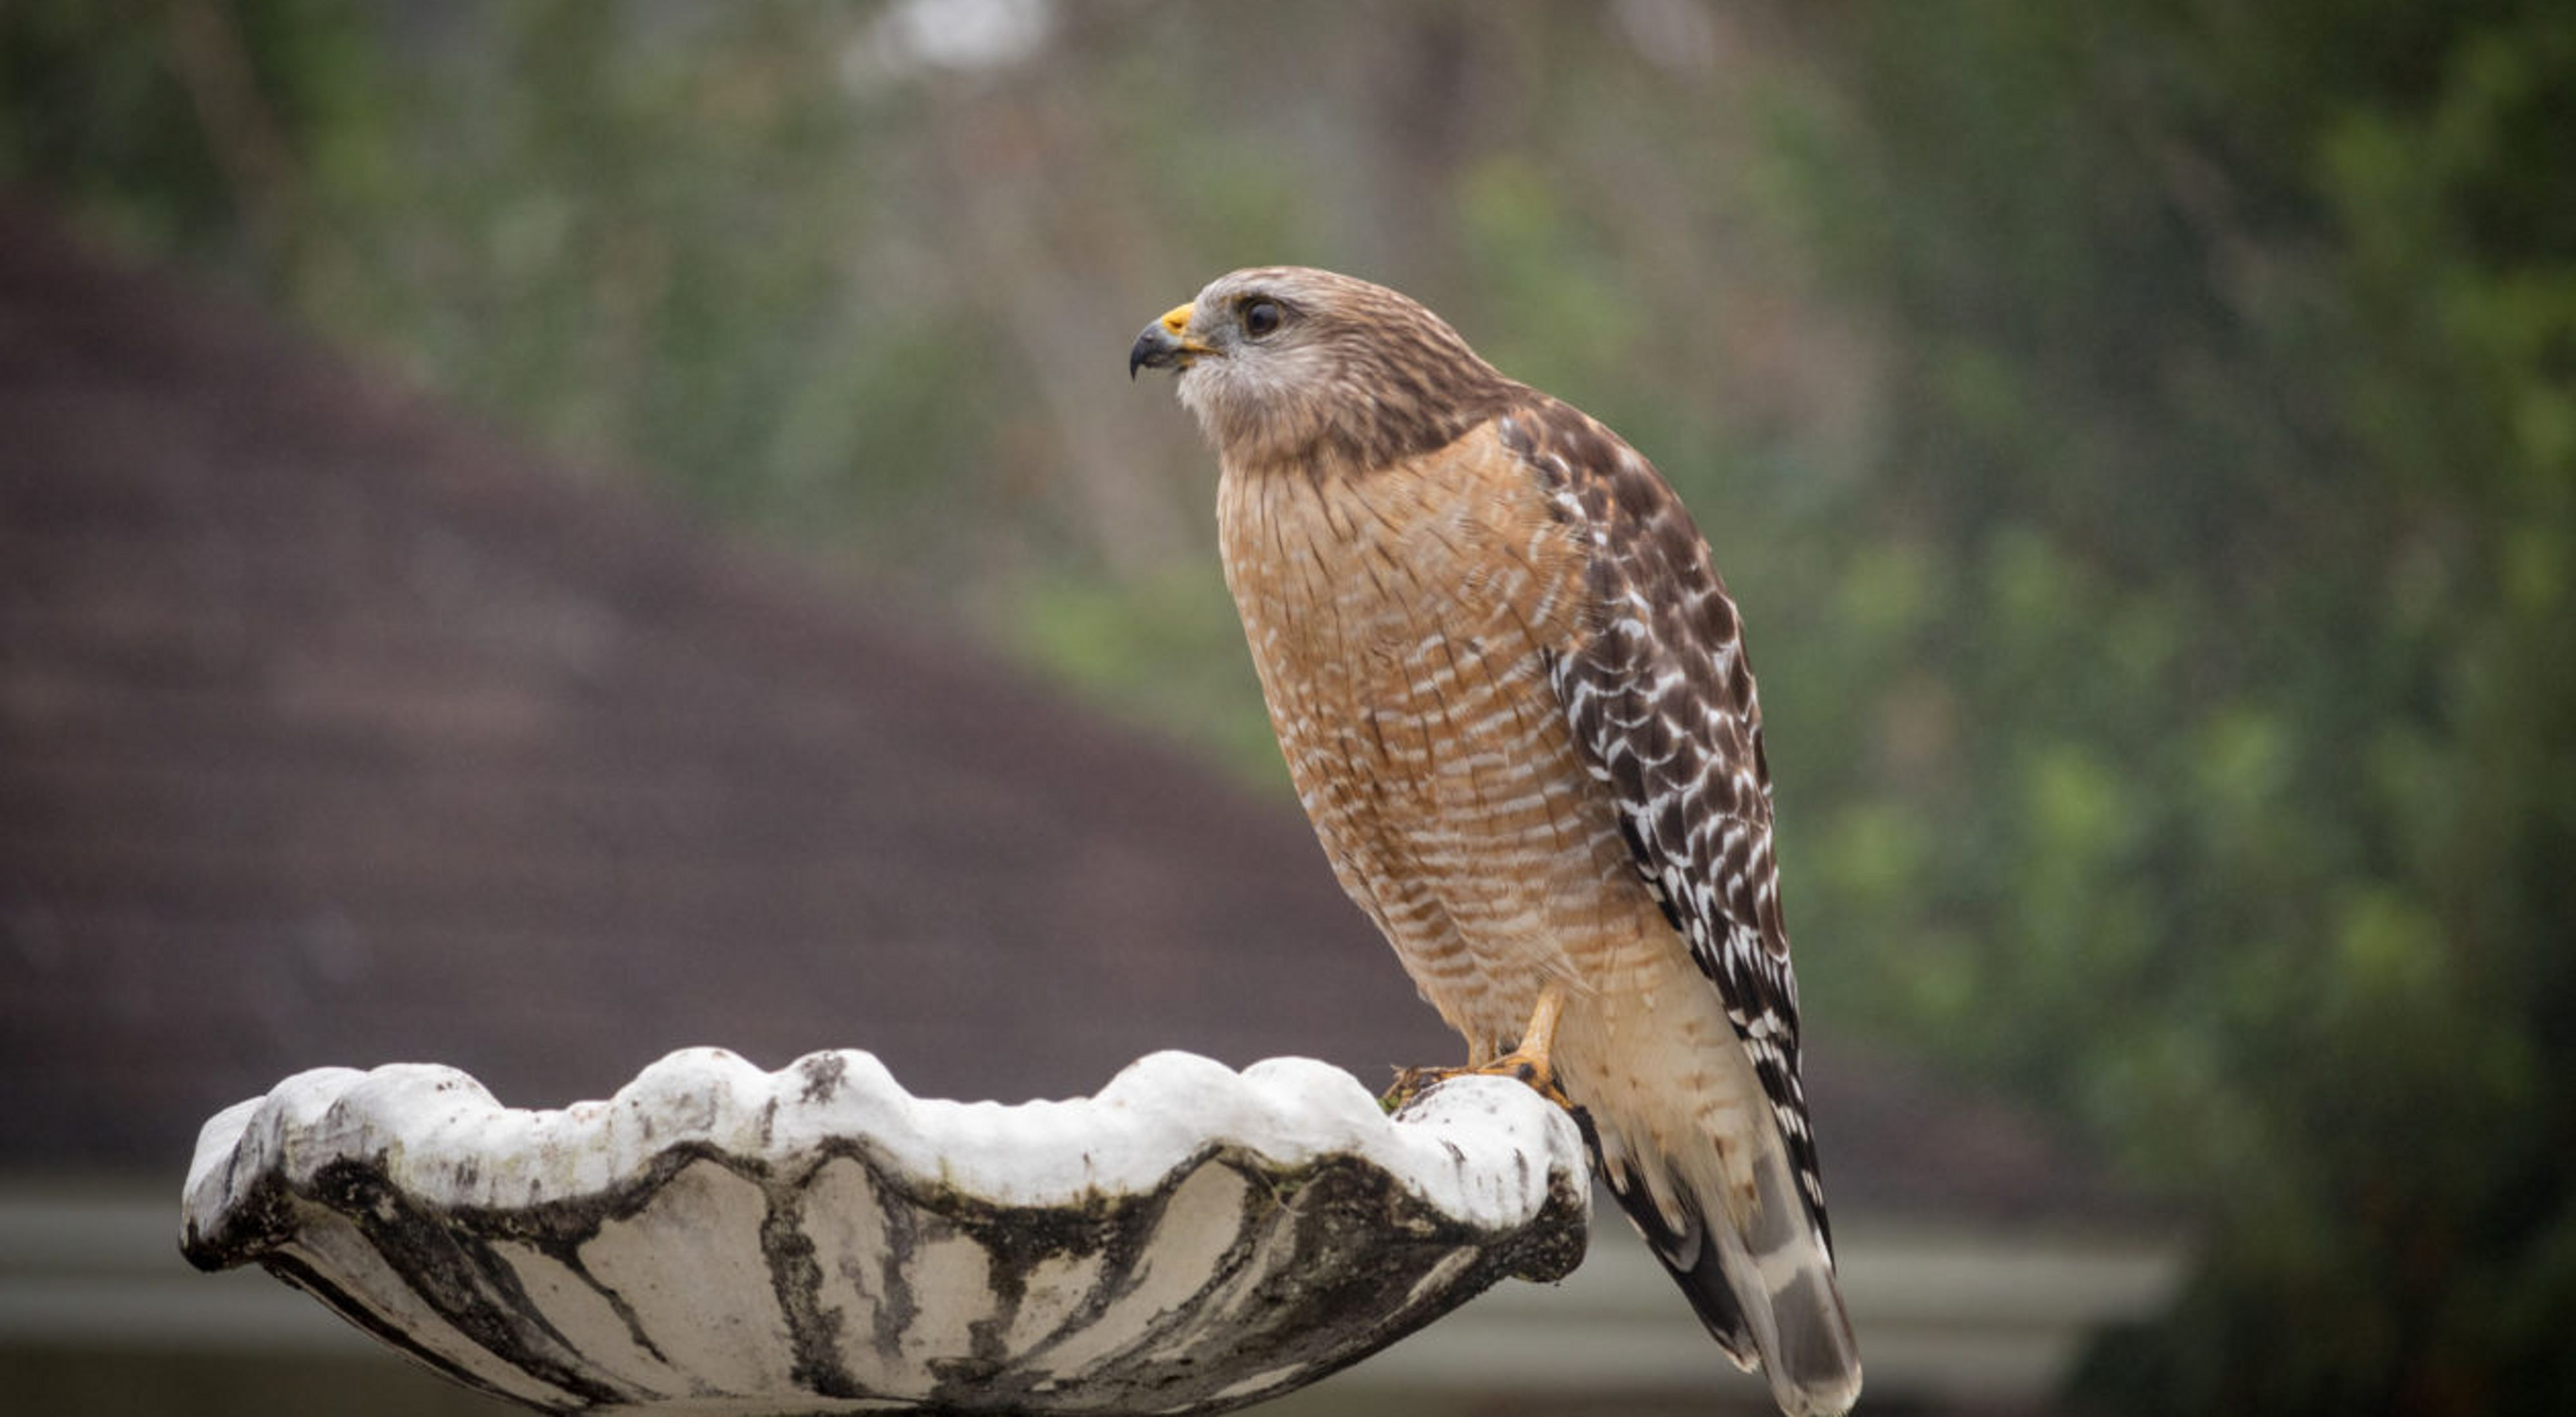 Red-shouldered hawk in the suburbs